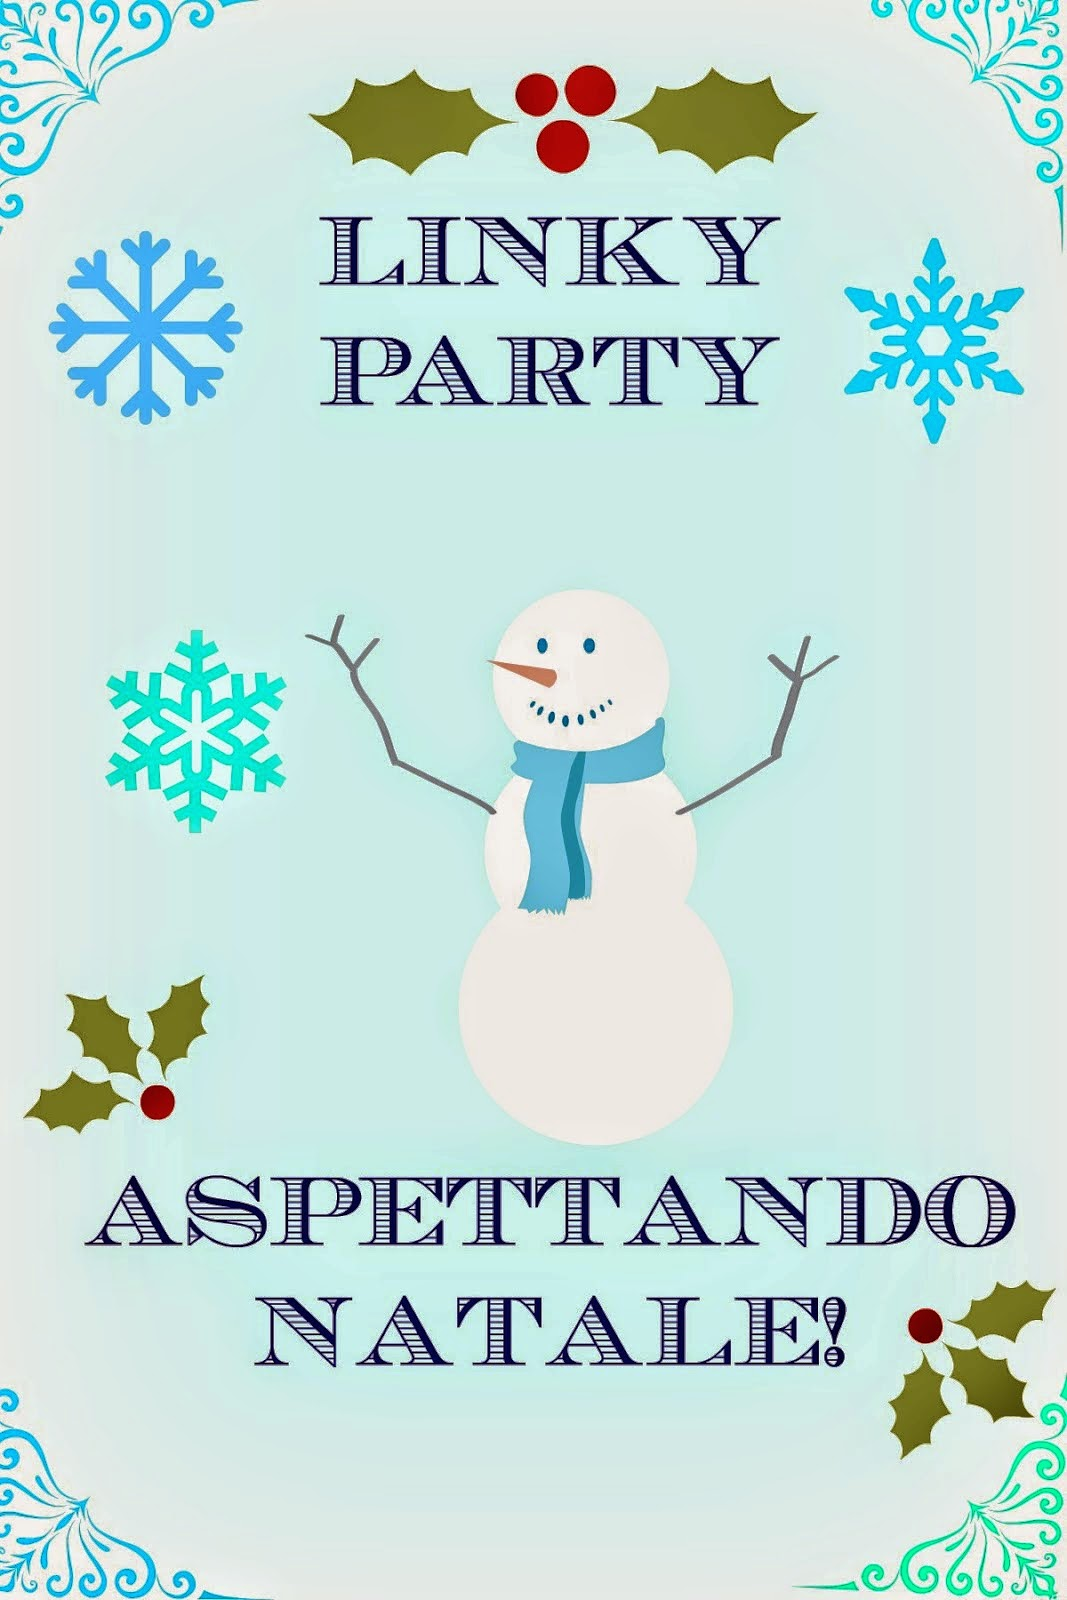 LINKY PARTY ASPETTANDO NATALE